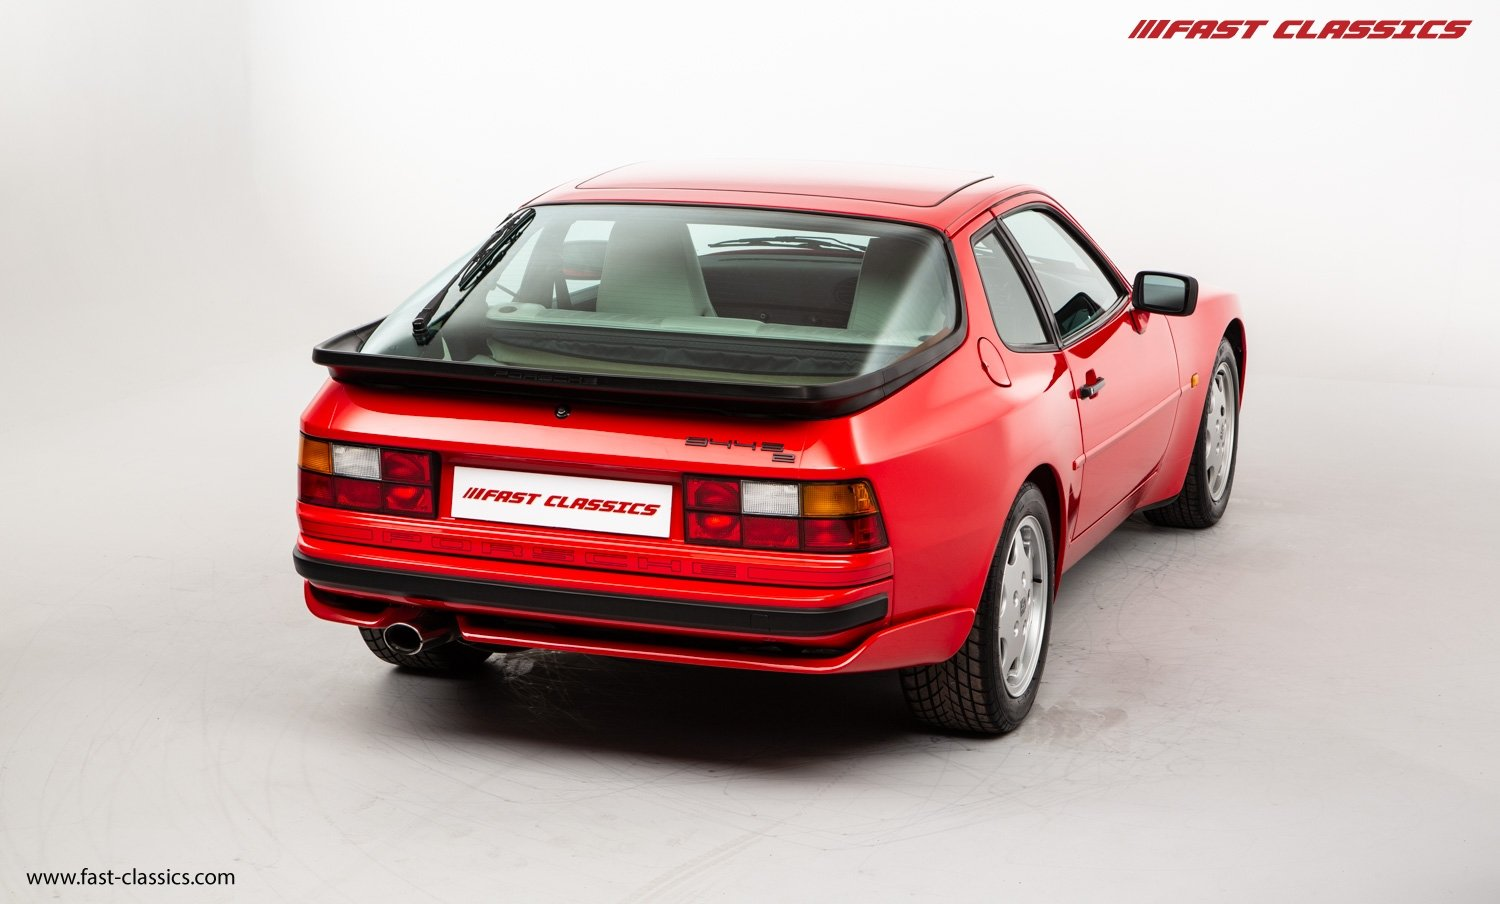 1990 PORSCHE 944 S2 // STUNNING GUARDS RED // 27K MILES // FAMILY For Sale (picture 9 of 23)